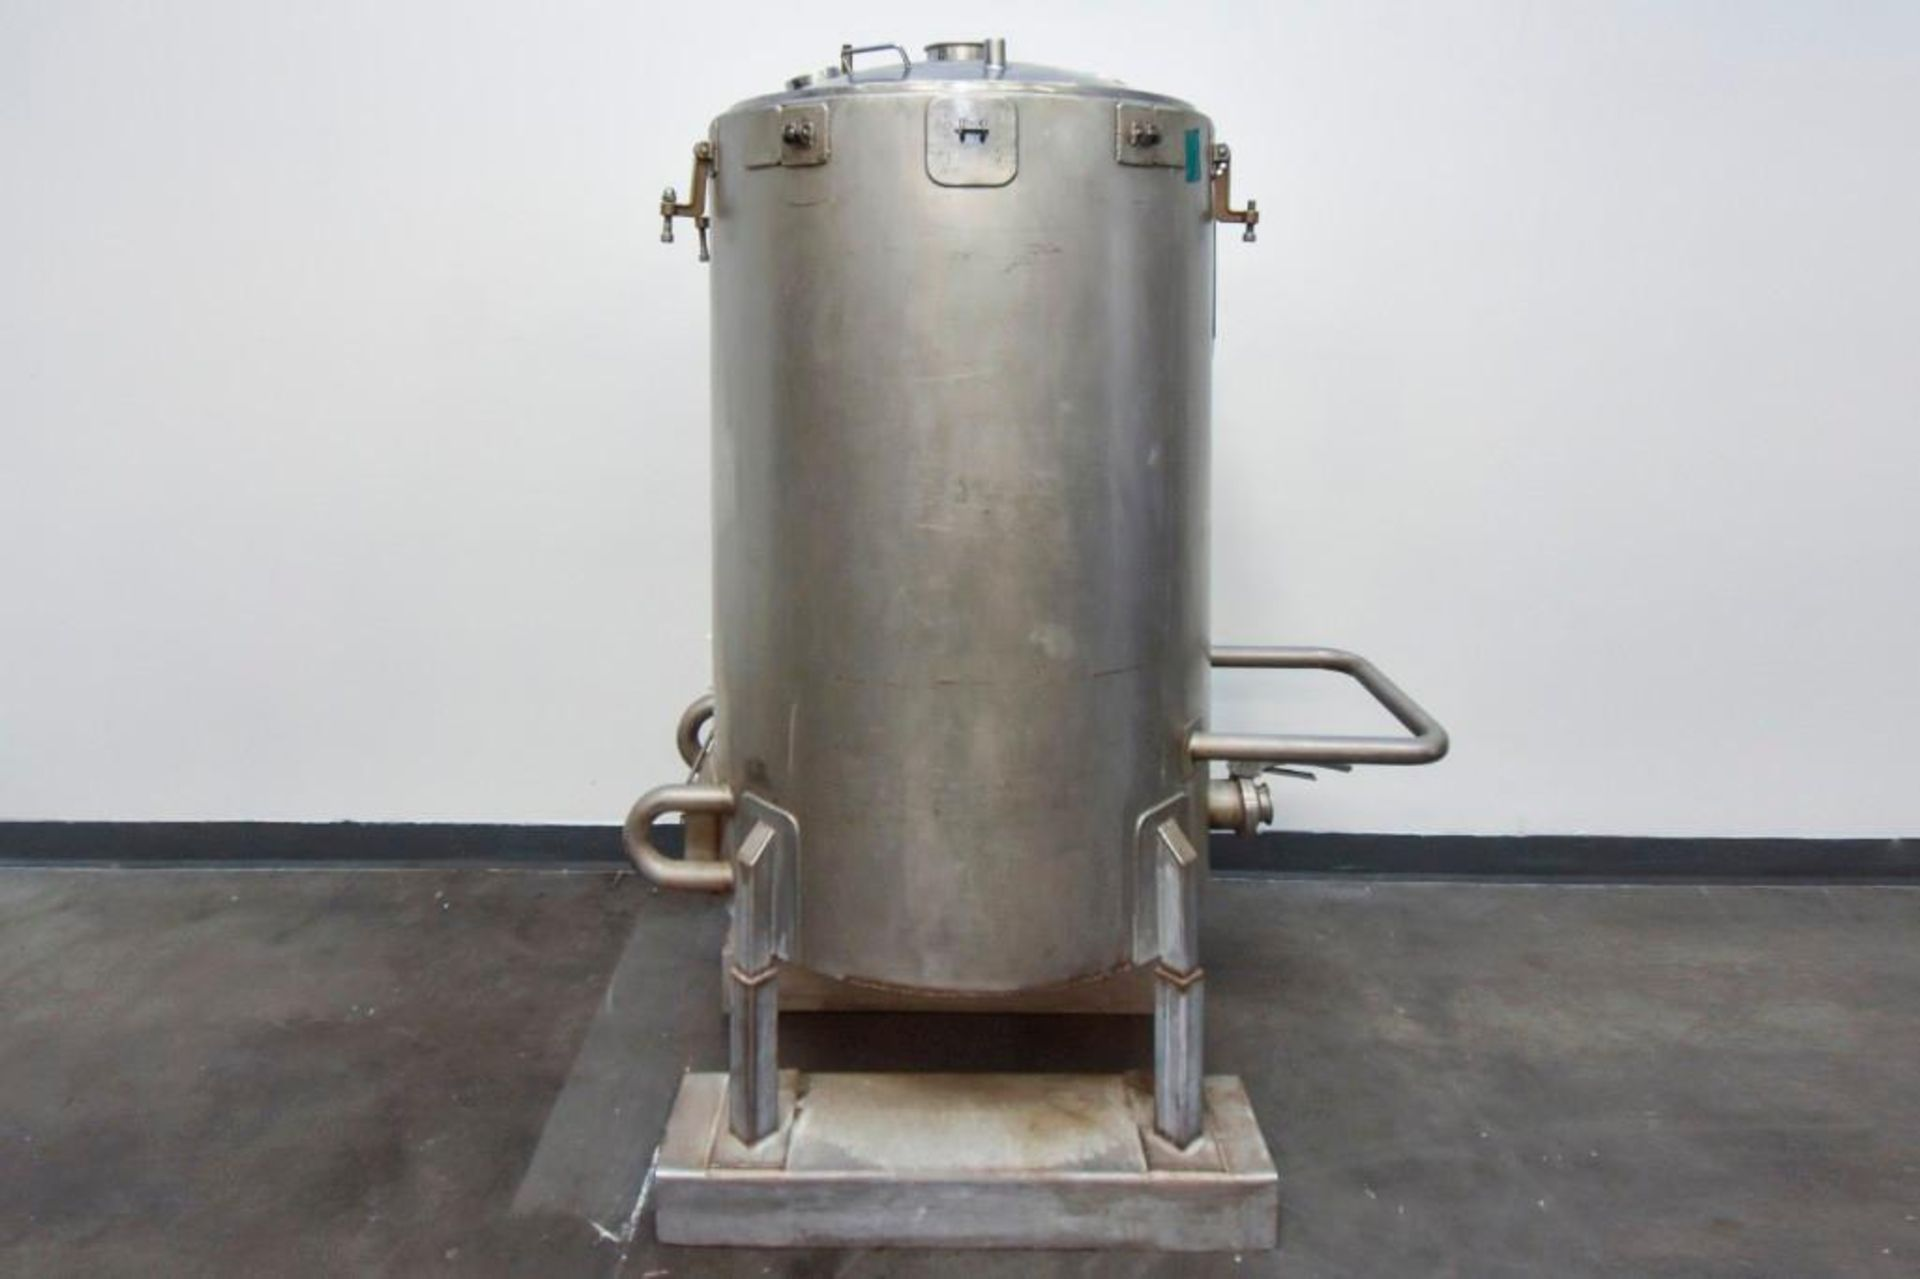 Jacketed Stainless Steel Holding Tank 340L - Image 5 of 18